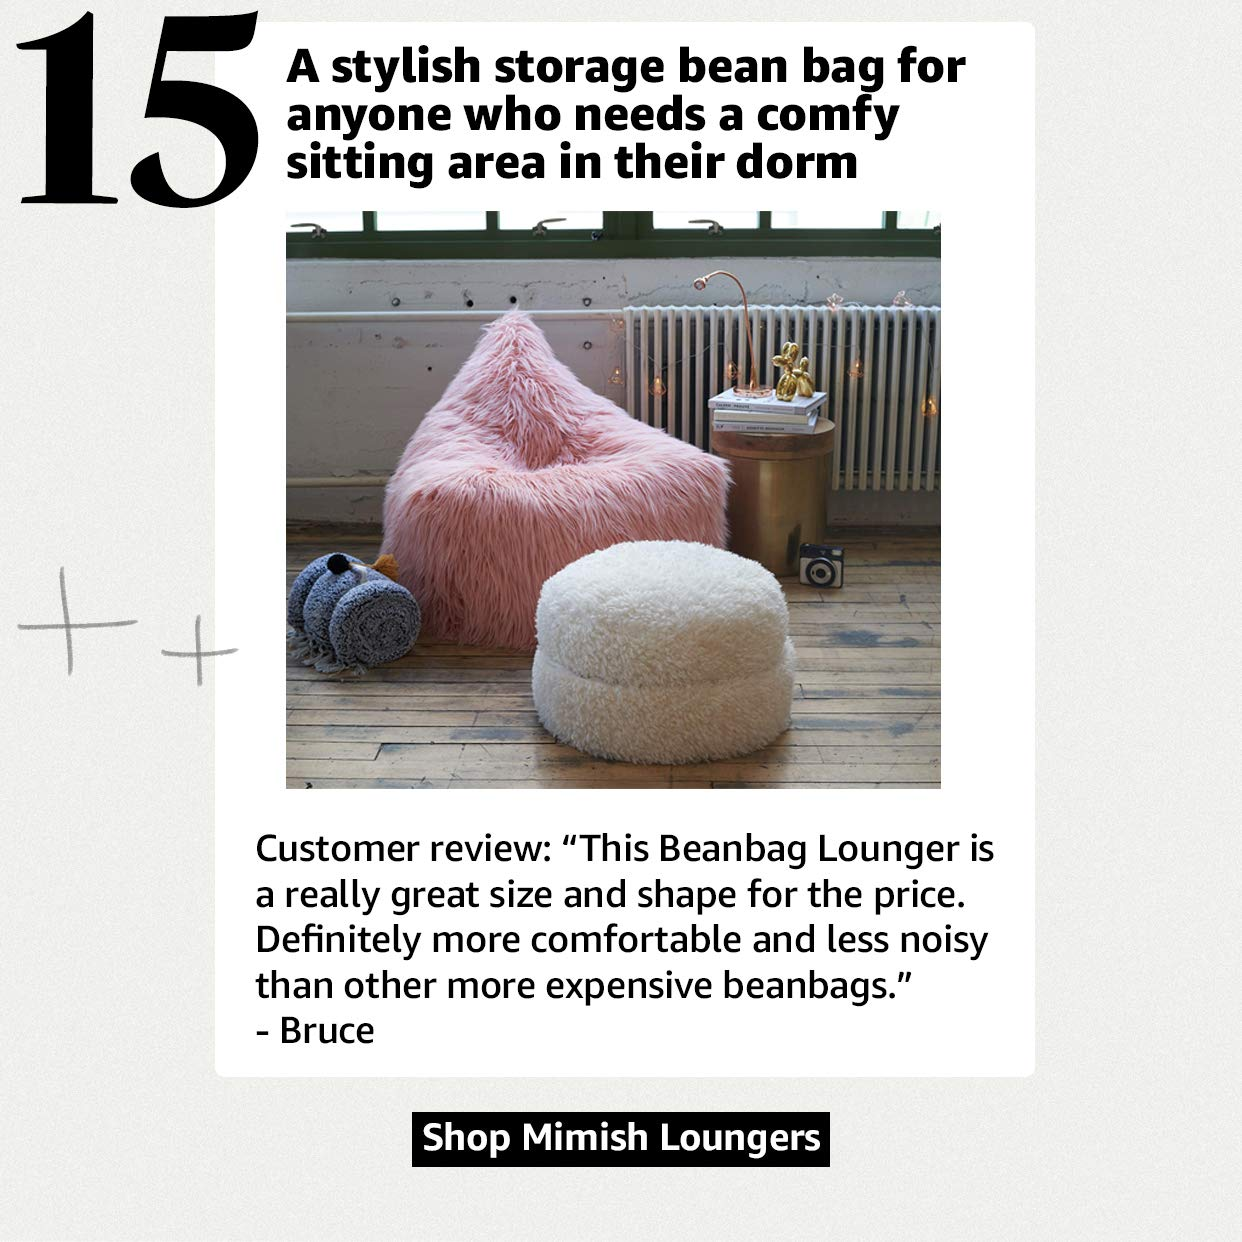 A stylish storage bean bag for anyone who need a comfy sitting area in their dorm